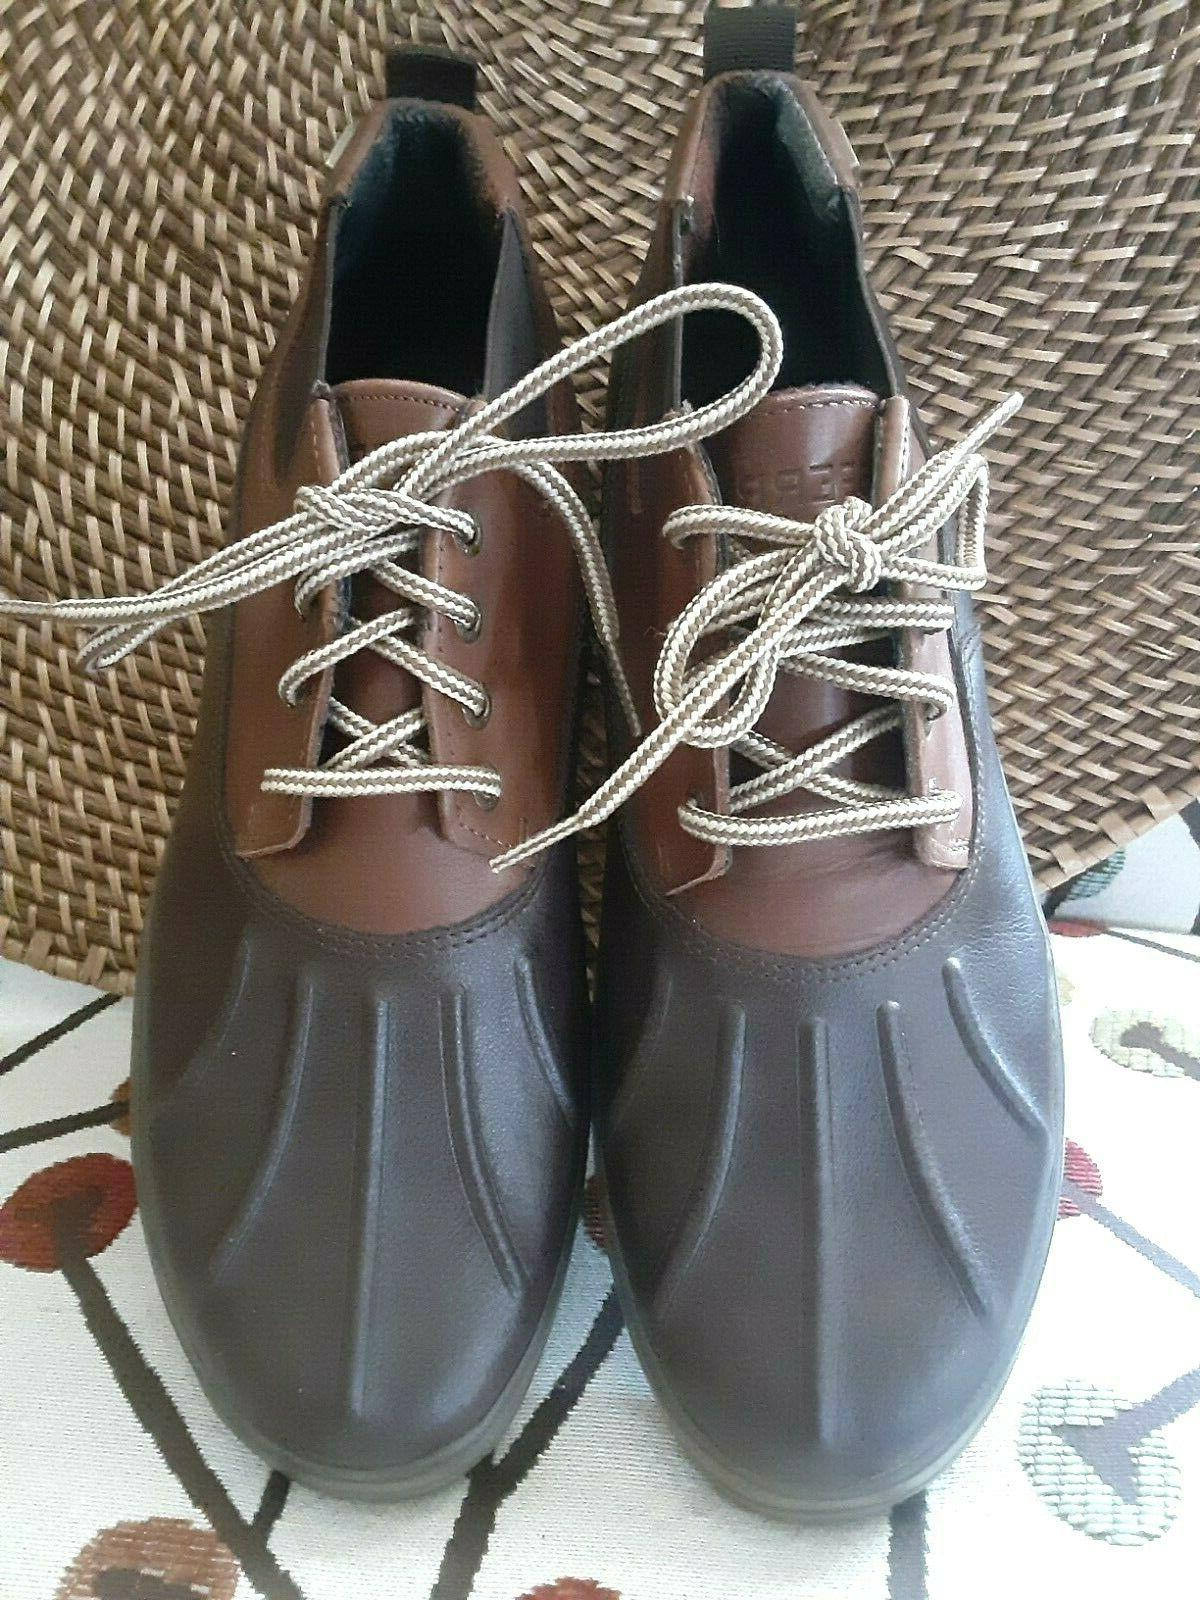 SPERRY TOP SIDER WEATHER Leather Chukka